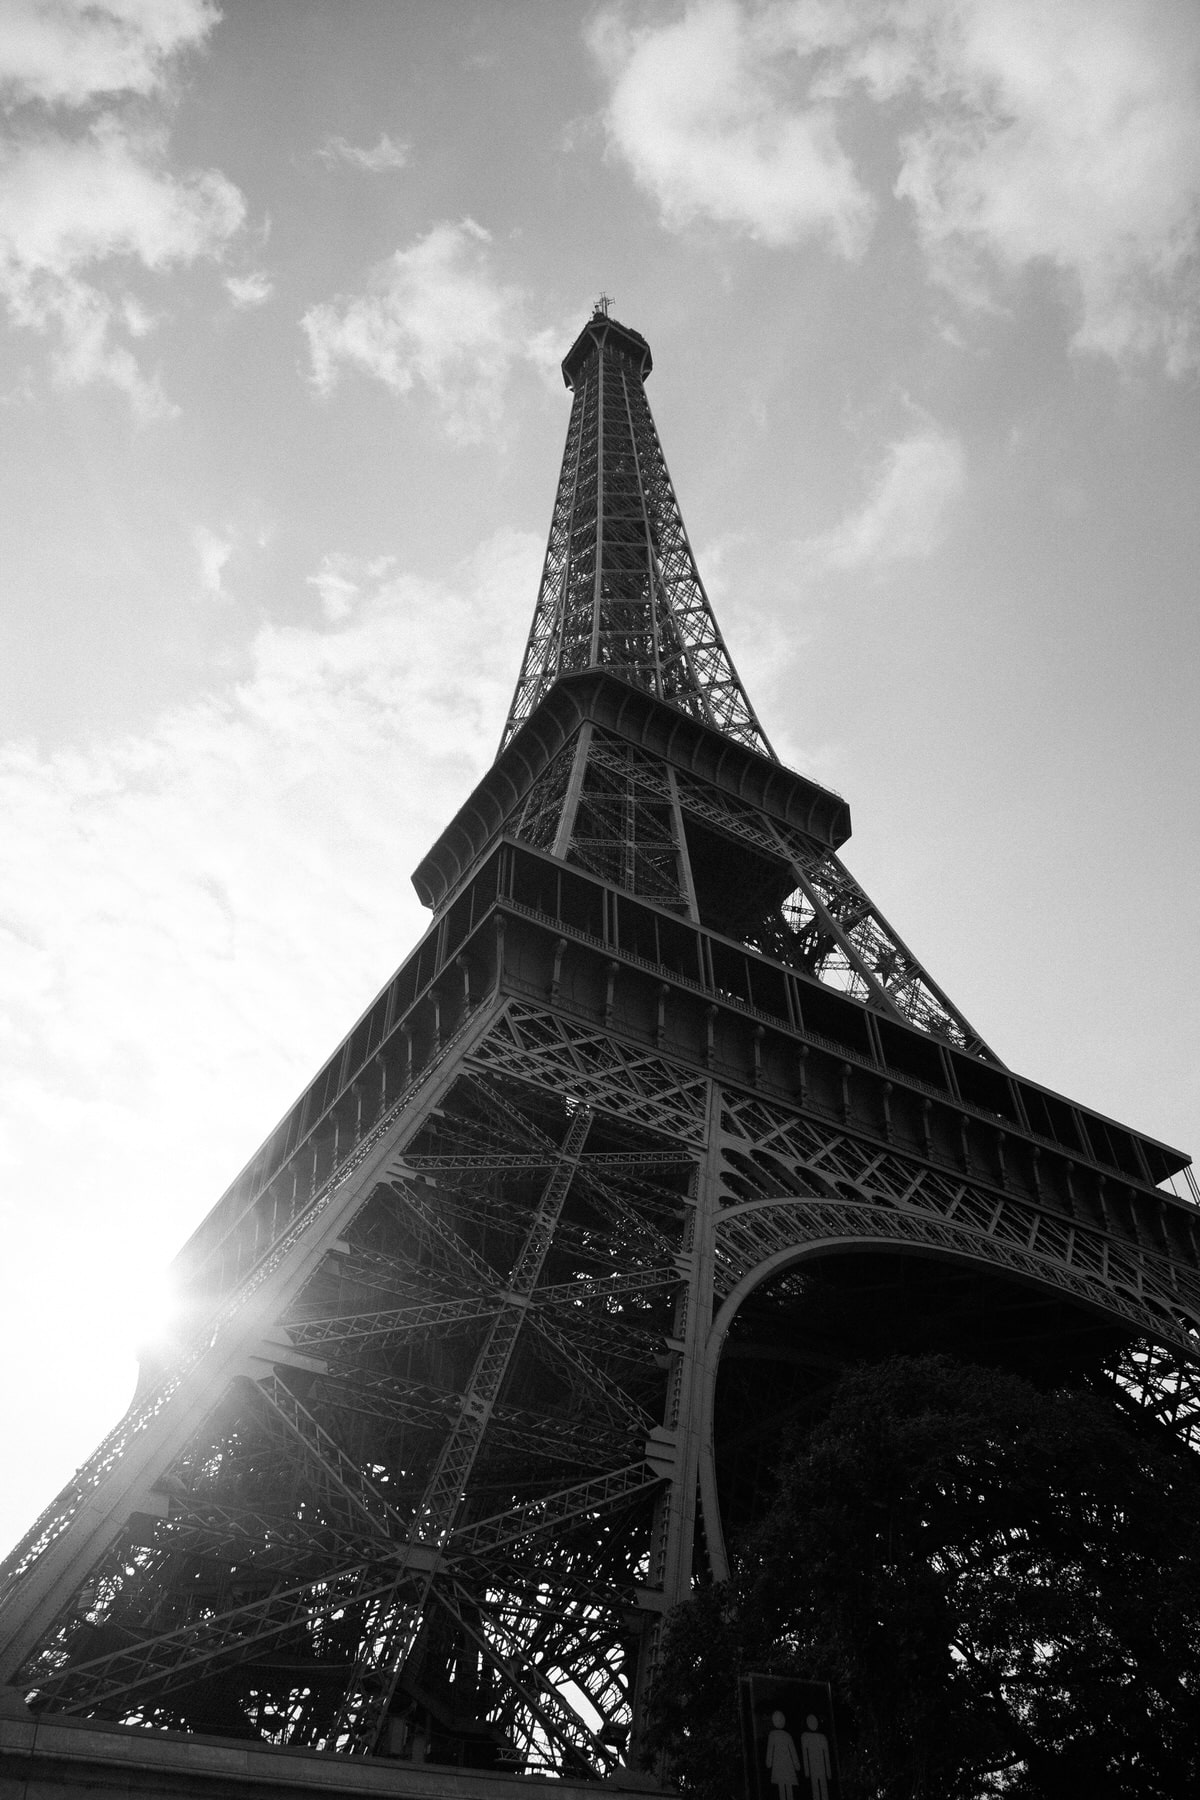 Eiffel-Tower-Paris-France-black-and-white-fine-art-photography-by-Studio-L-photographer-Laura-Schneider-_4666